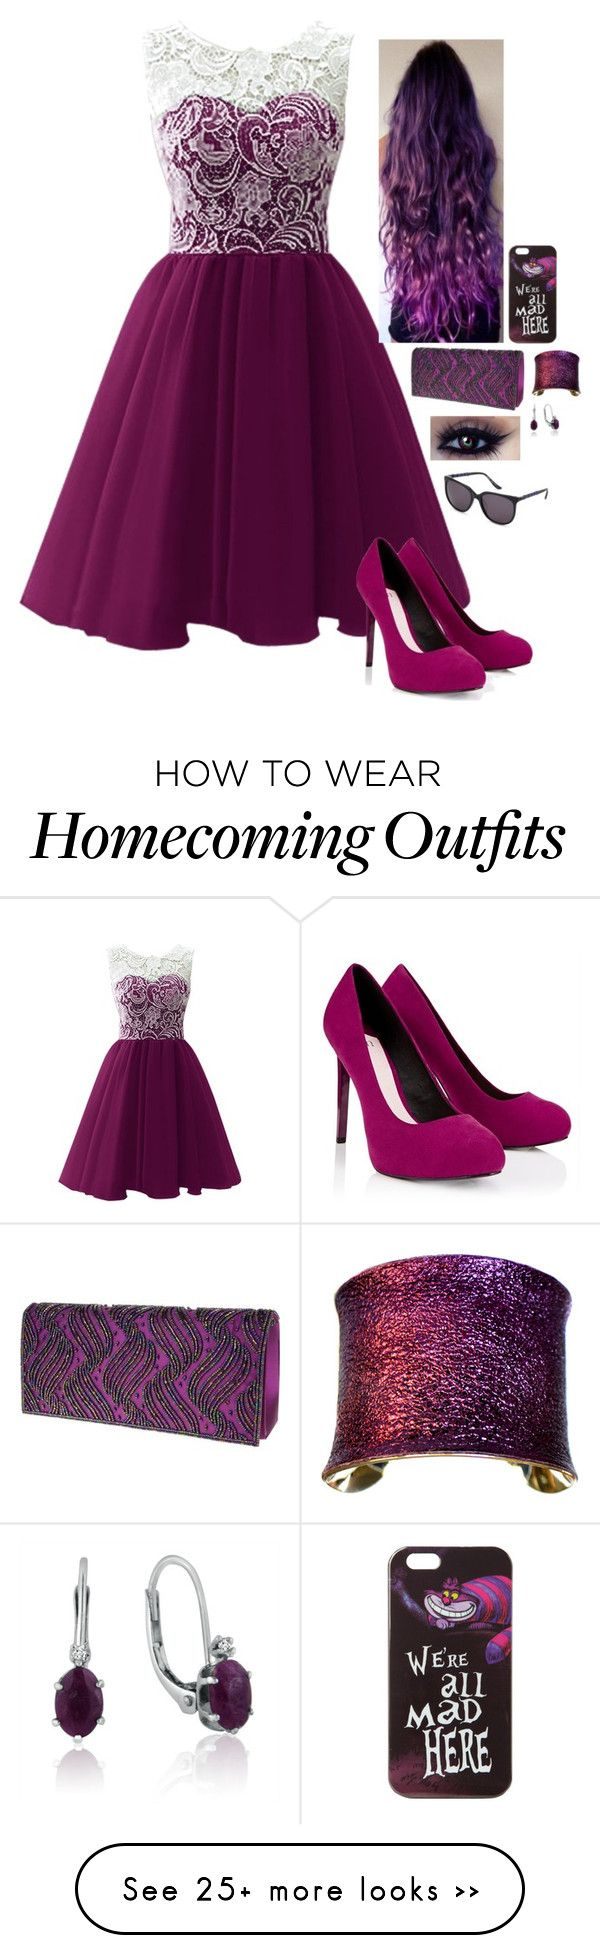 """Untitled #572"" by merlinchick on Polyvore featuring moda, Nina, Disney, UNEARTHED, Missoni ve Lipsy"